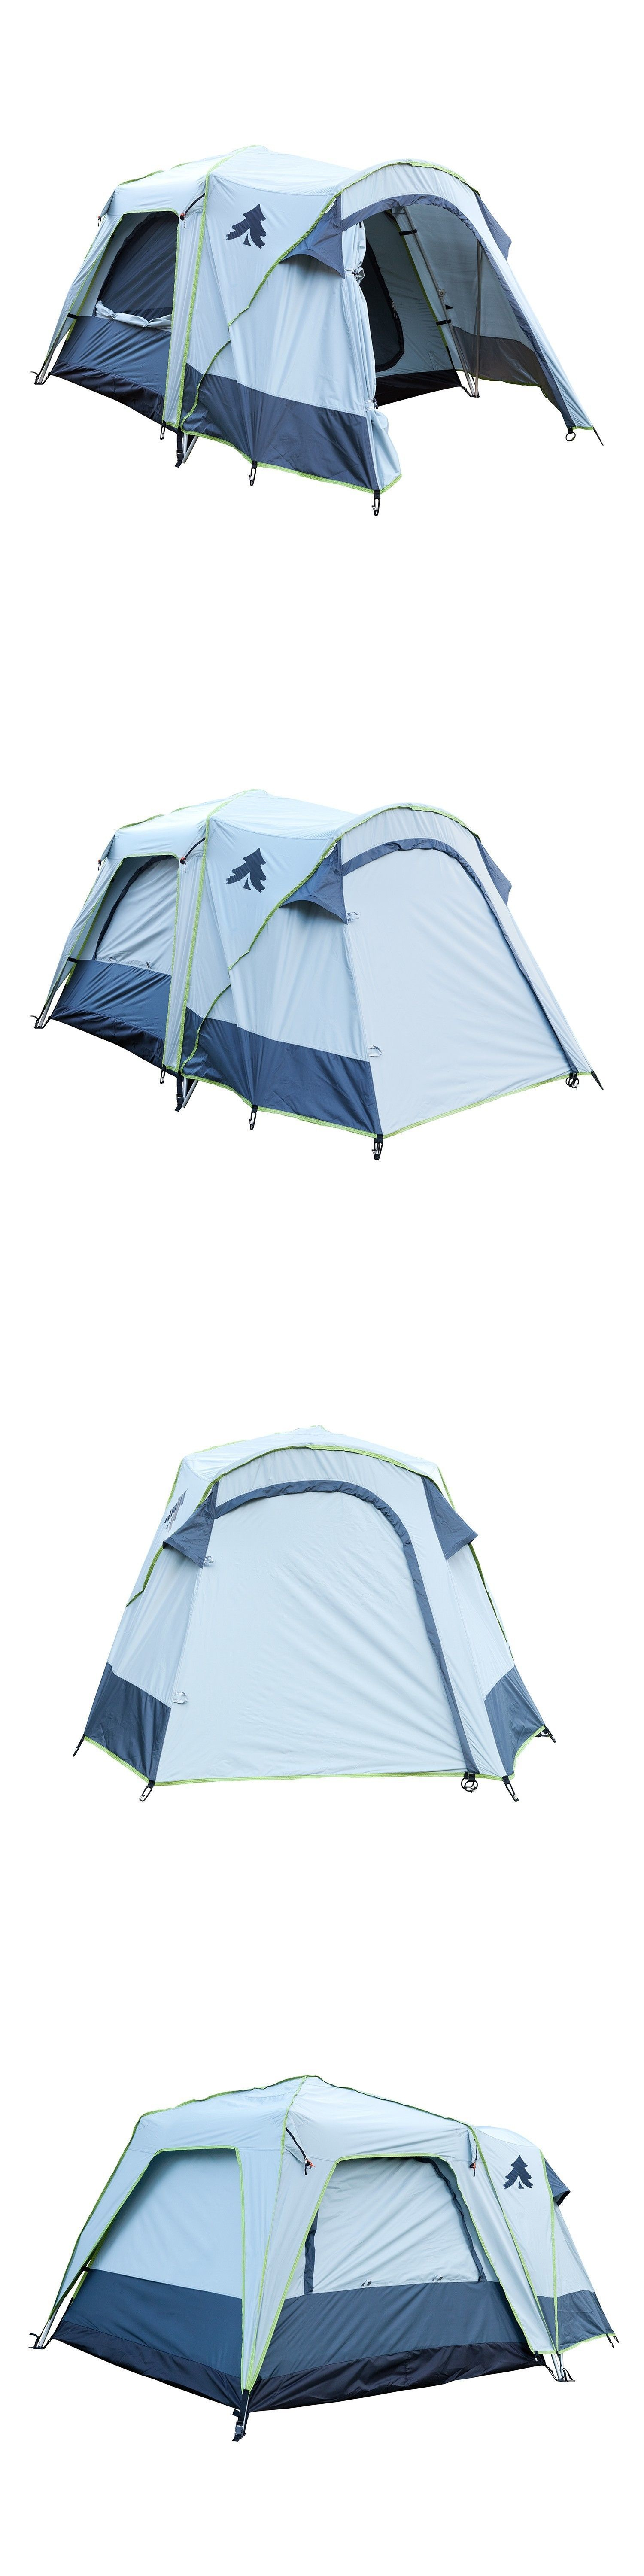 Ledge Sports Recluse Lightweight 3 Person Tent 100 X  sc 1 st  Best Tent 2018 & Lightweight 3 Person Tent - Best Tent 2018